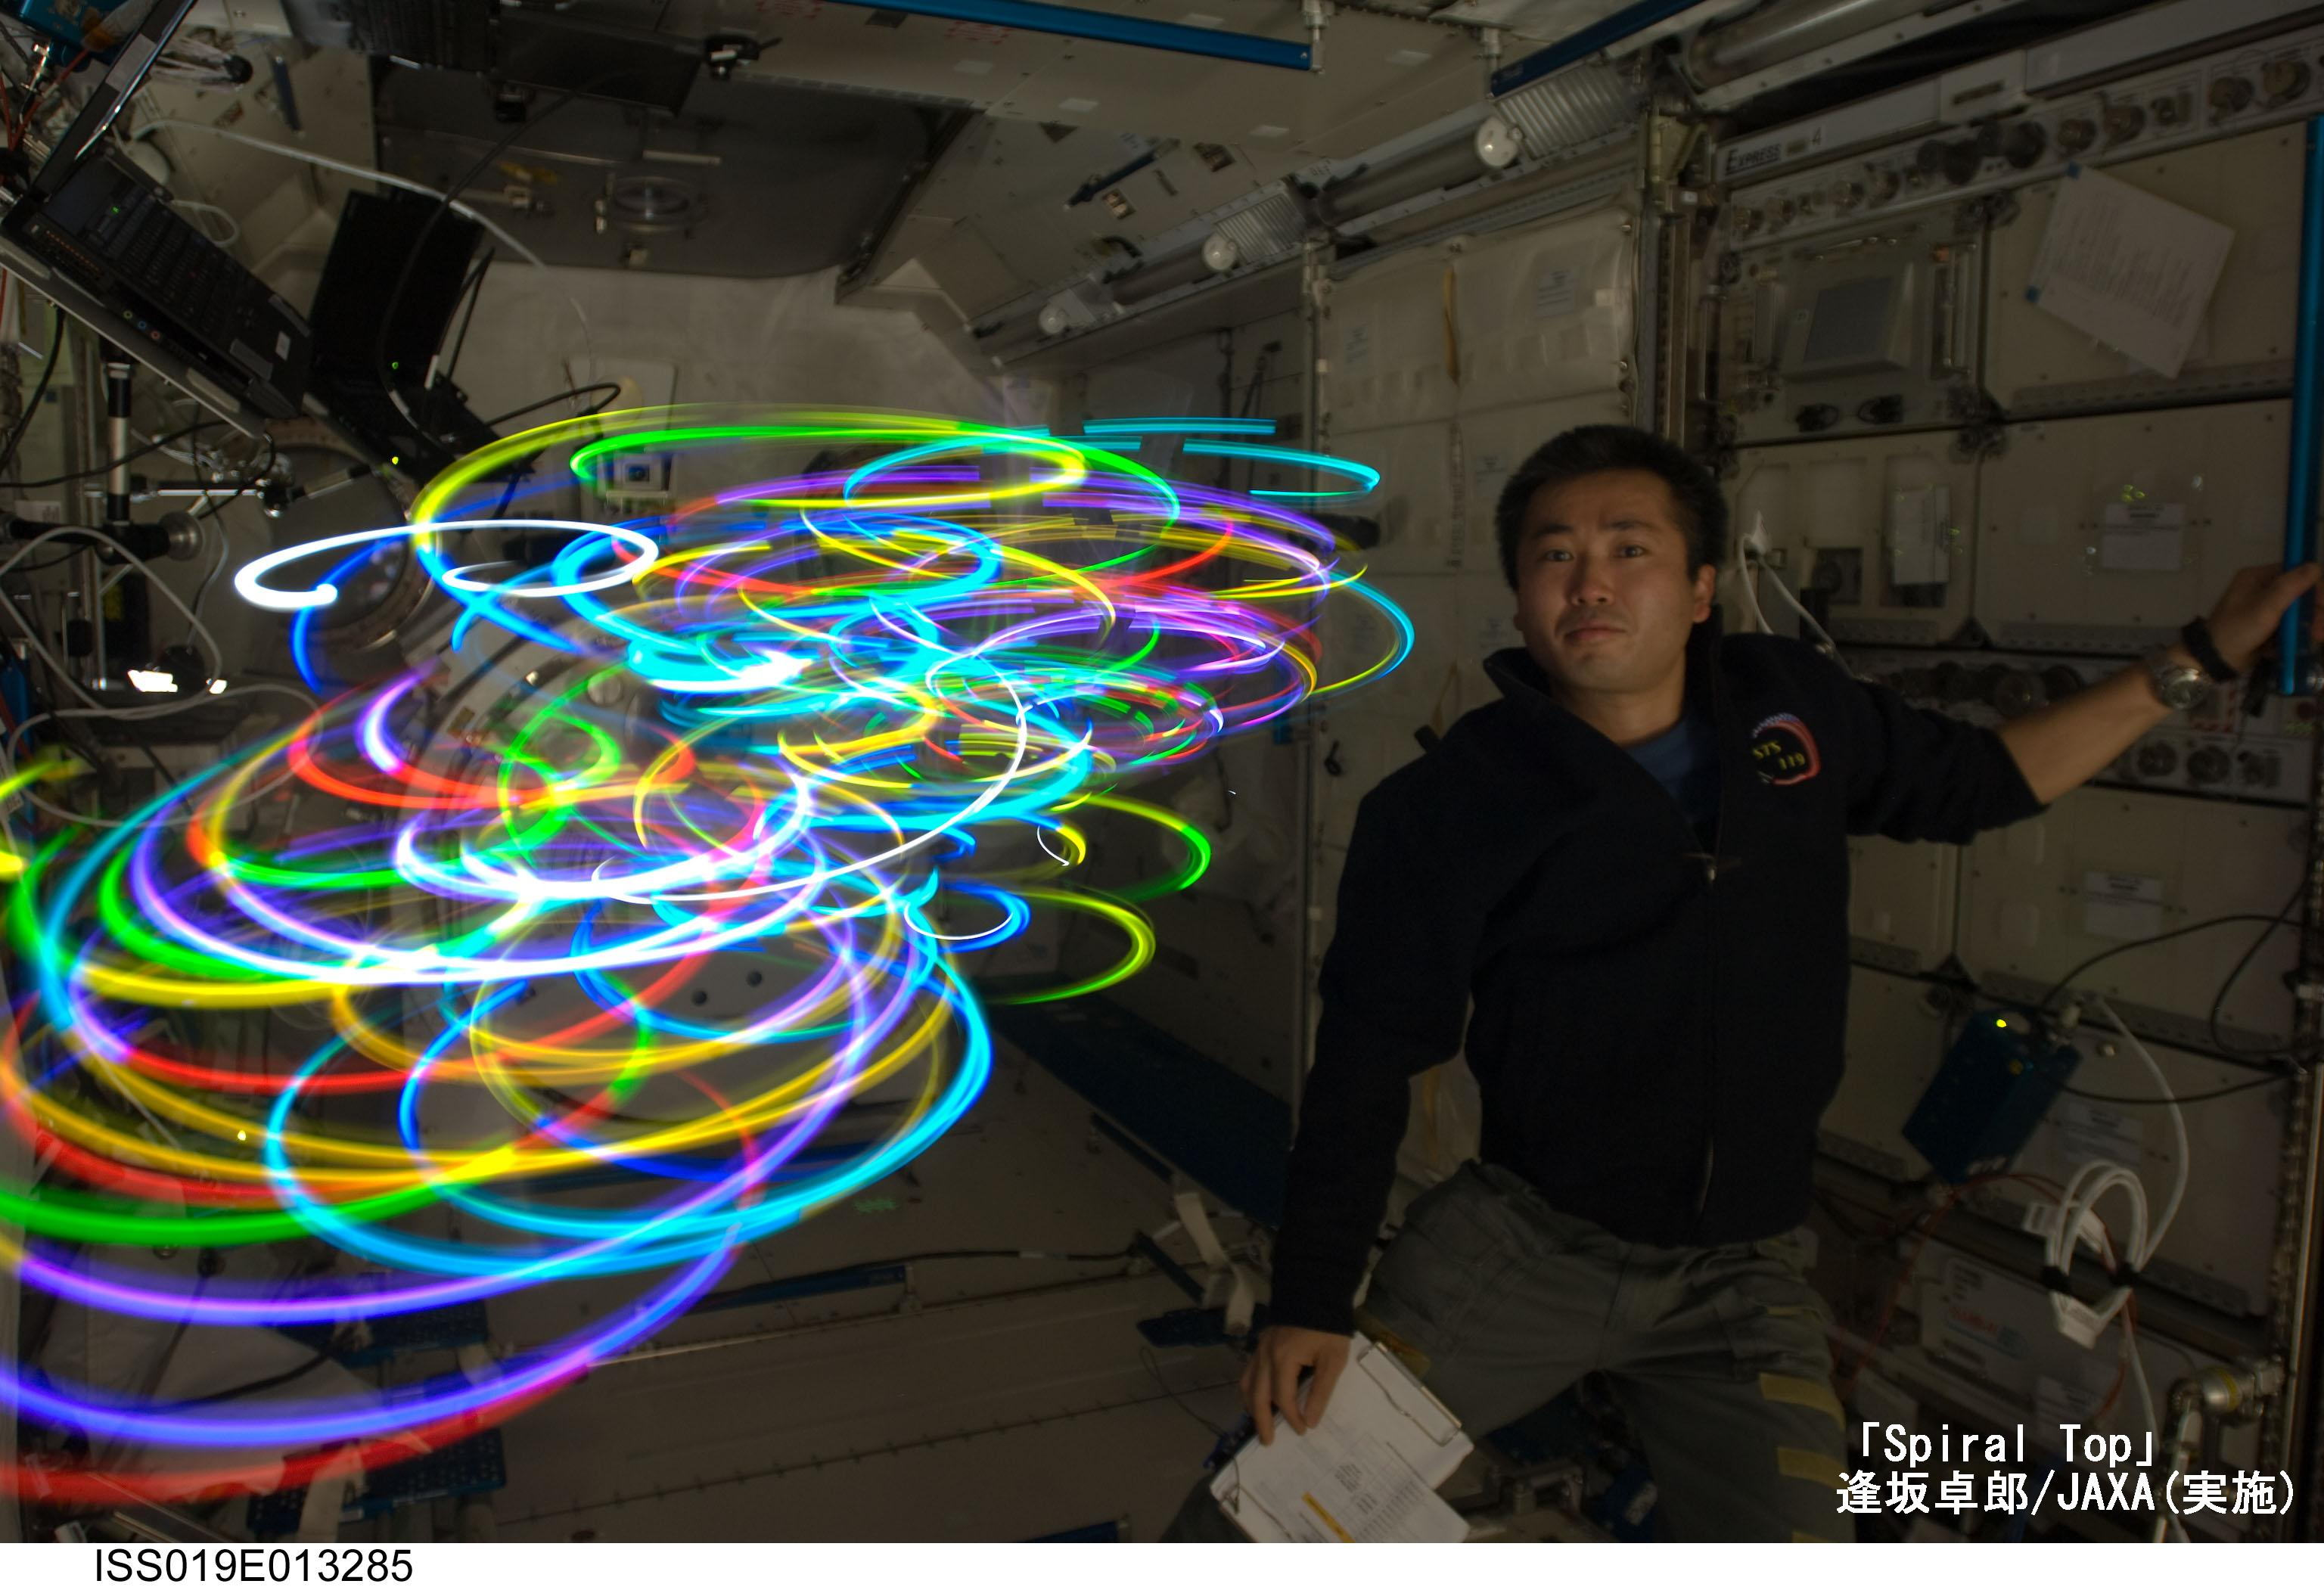 The Most Awesome LED Light Art (in Space!) You'll See This Side of the Galactic Core